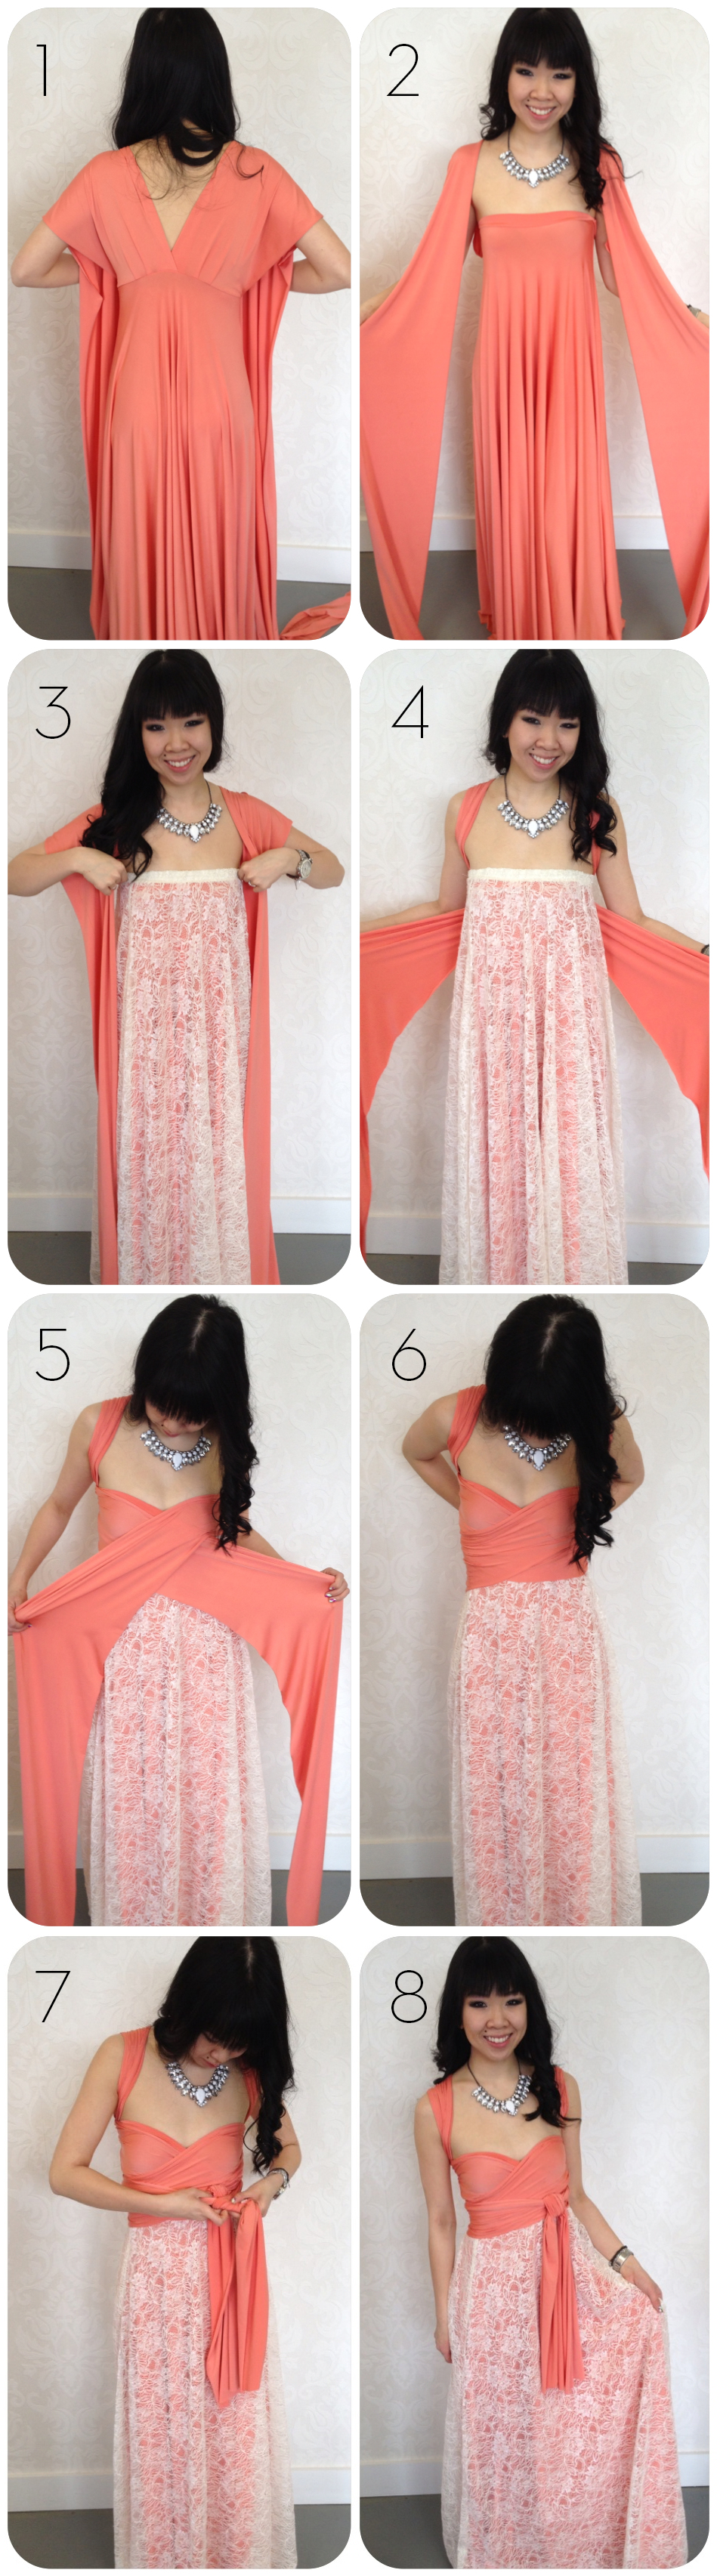 how to add lace to a convertible dress - wear a lace overlay on an infinity dress!